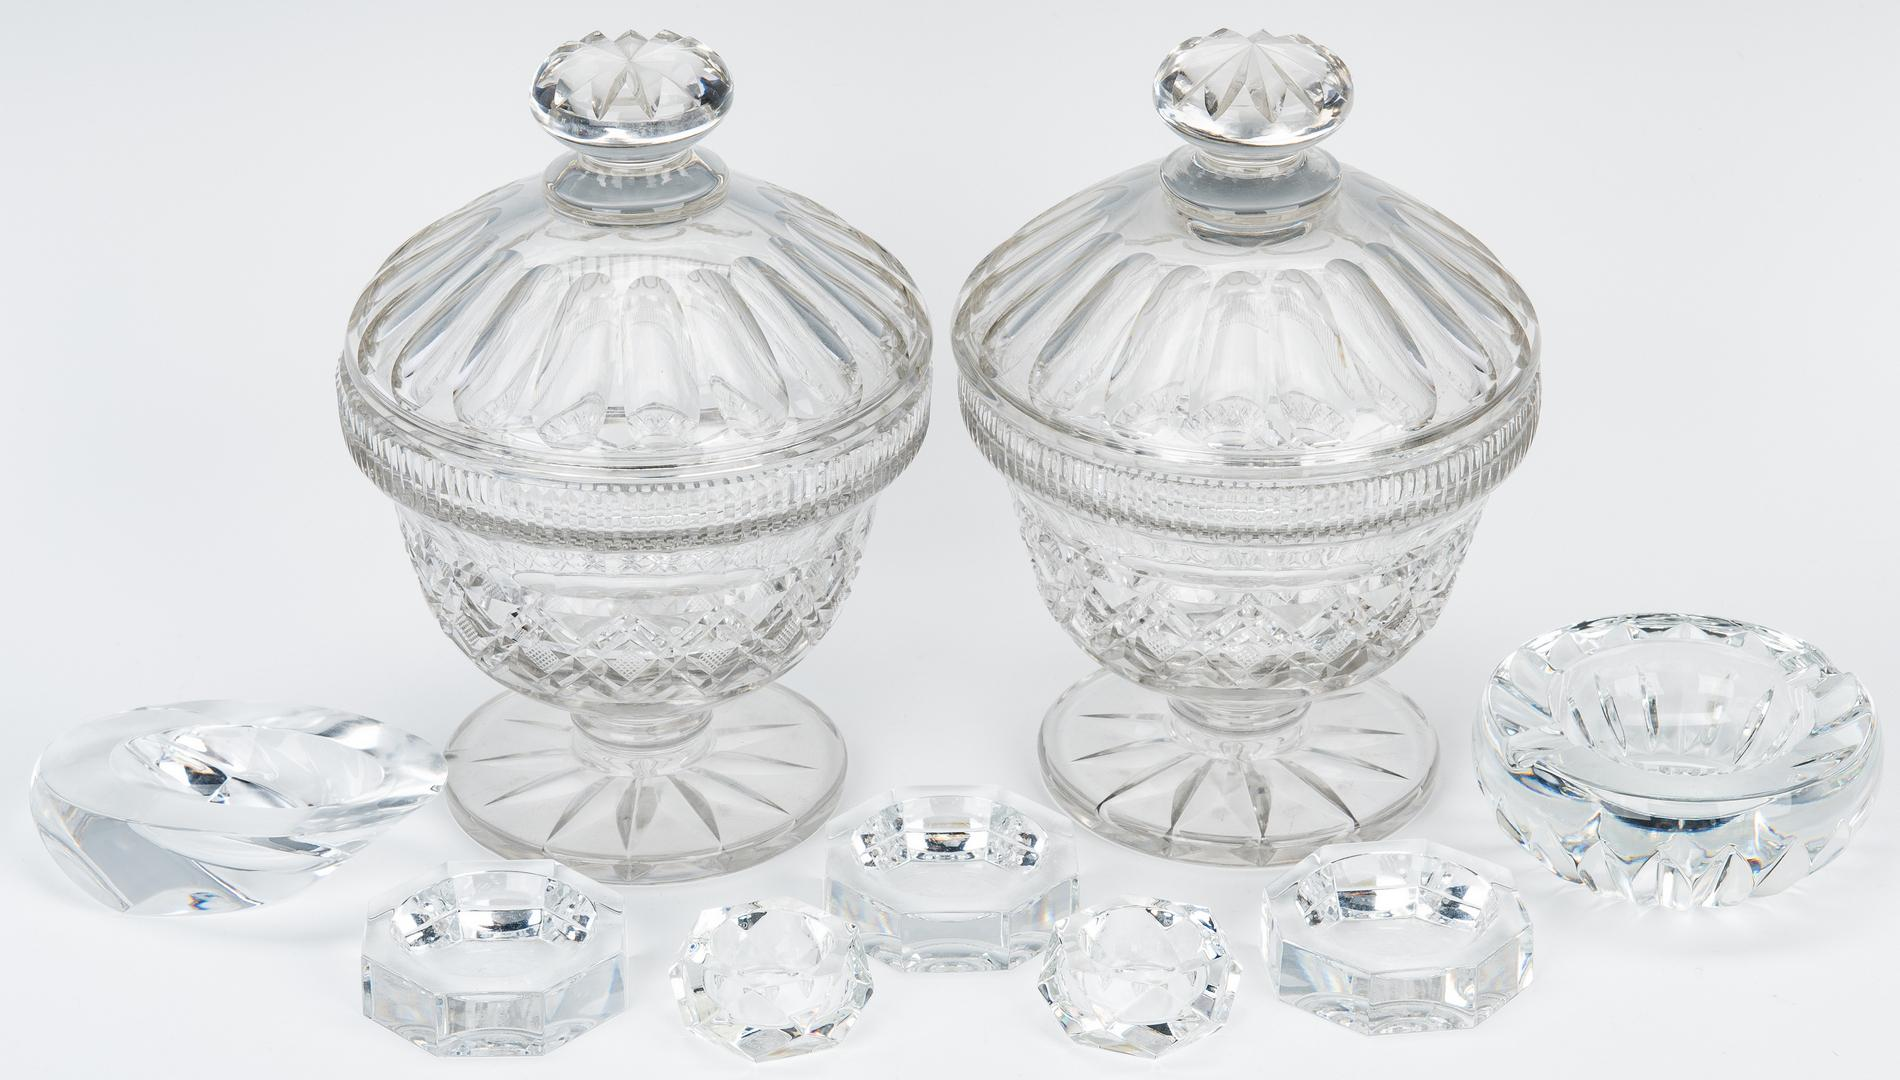 Group 5 Decorative Table Items & Baccarat Crystal - Image 3 of 25